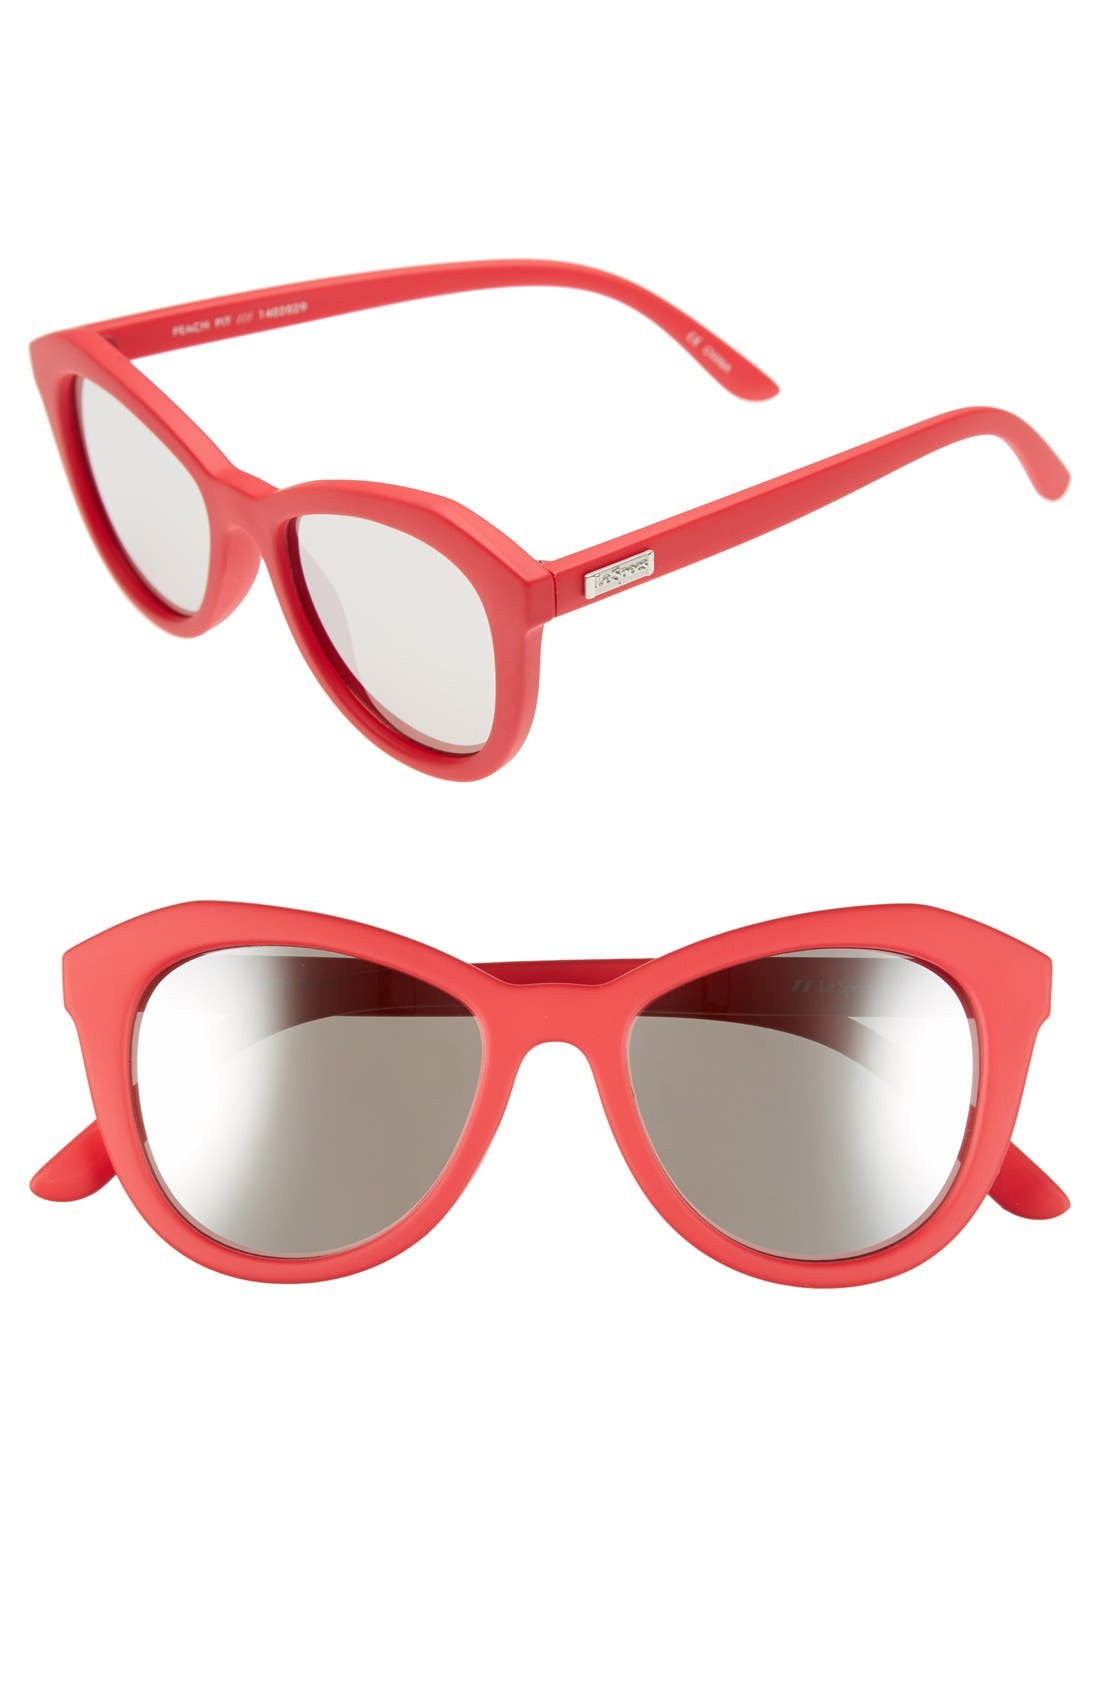 Main Image - Le Specs 'Peach Pit' 52mm Cat Eye Sunglasses